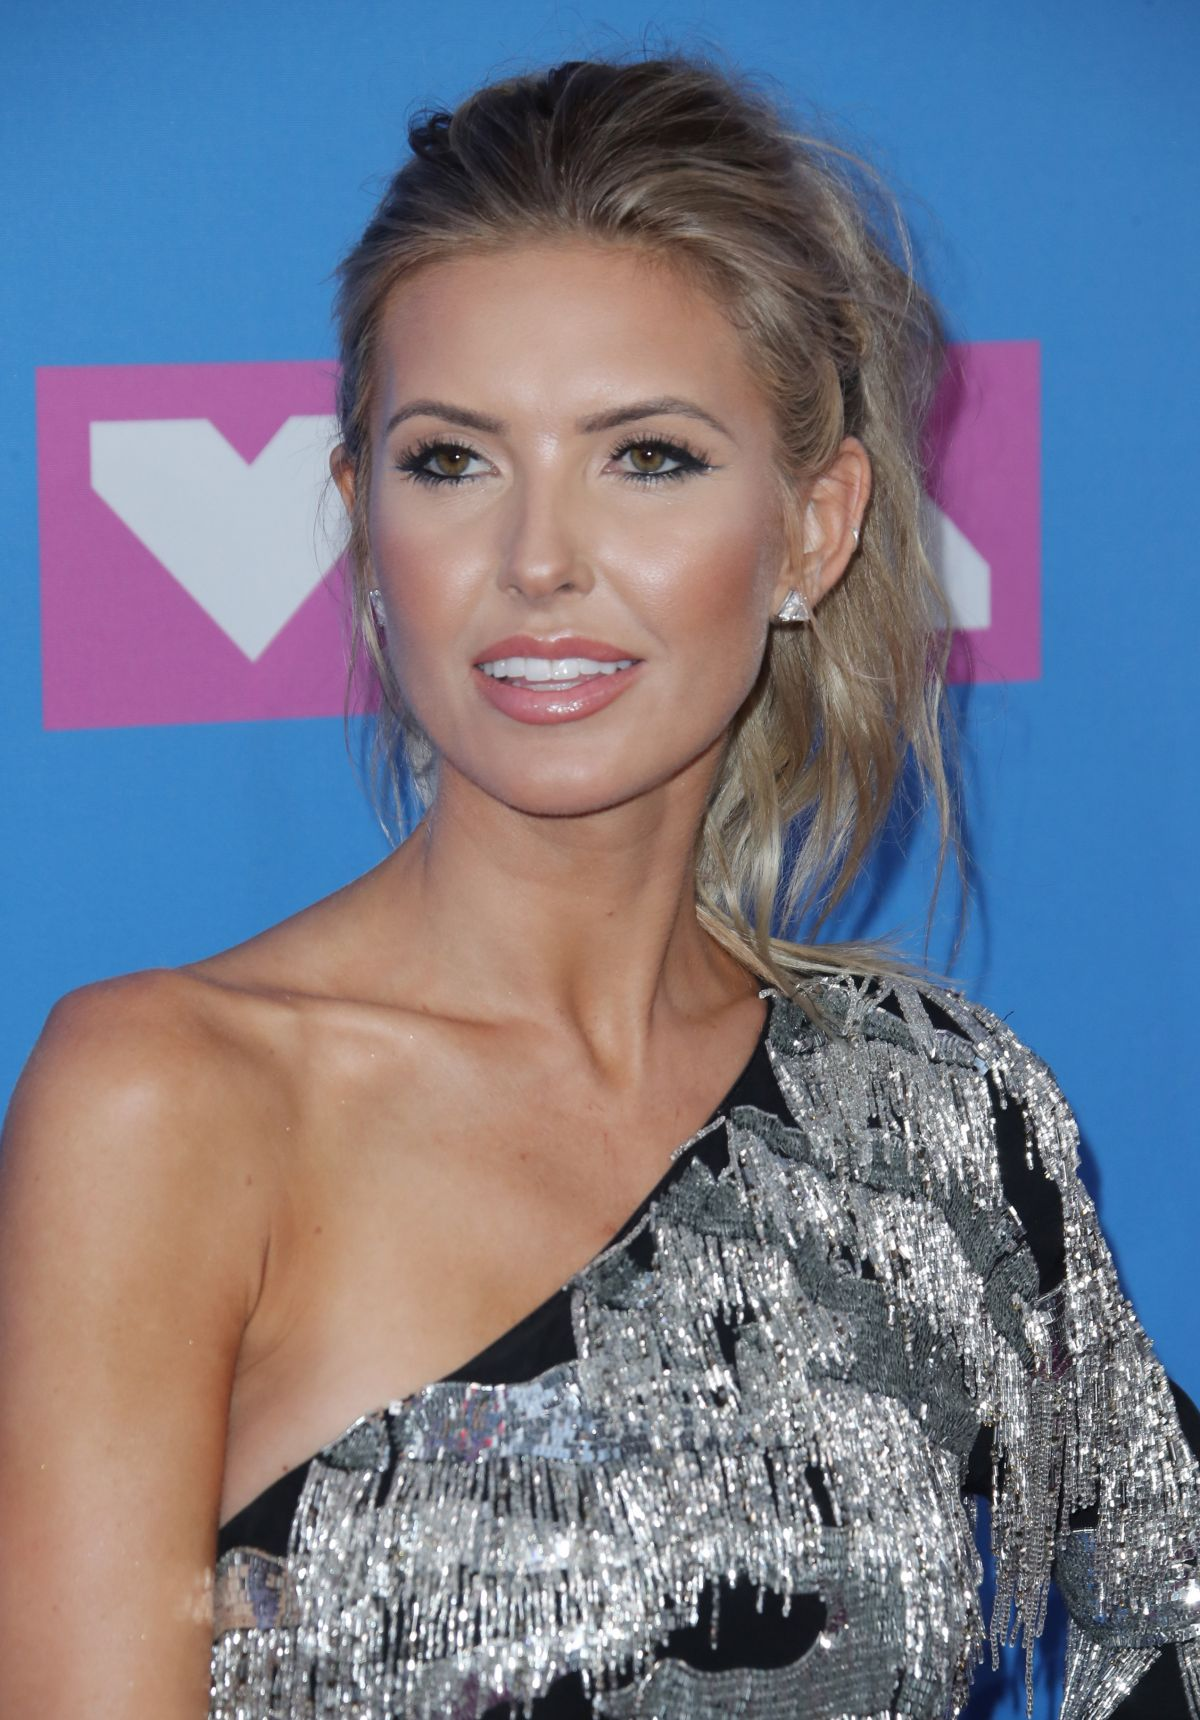 2019 Audrina Patridge nudes (61 foto and video), Tits, Hot, Twitter, lingerie 2006